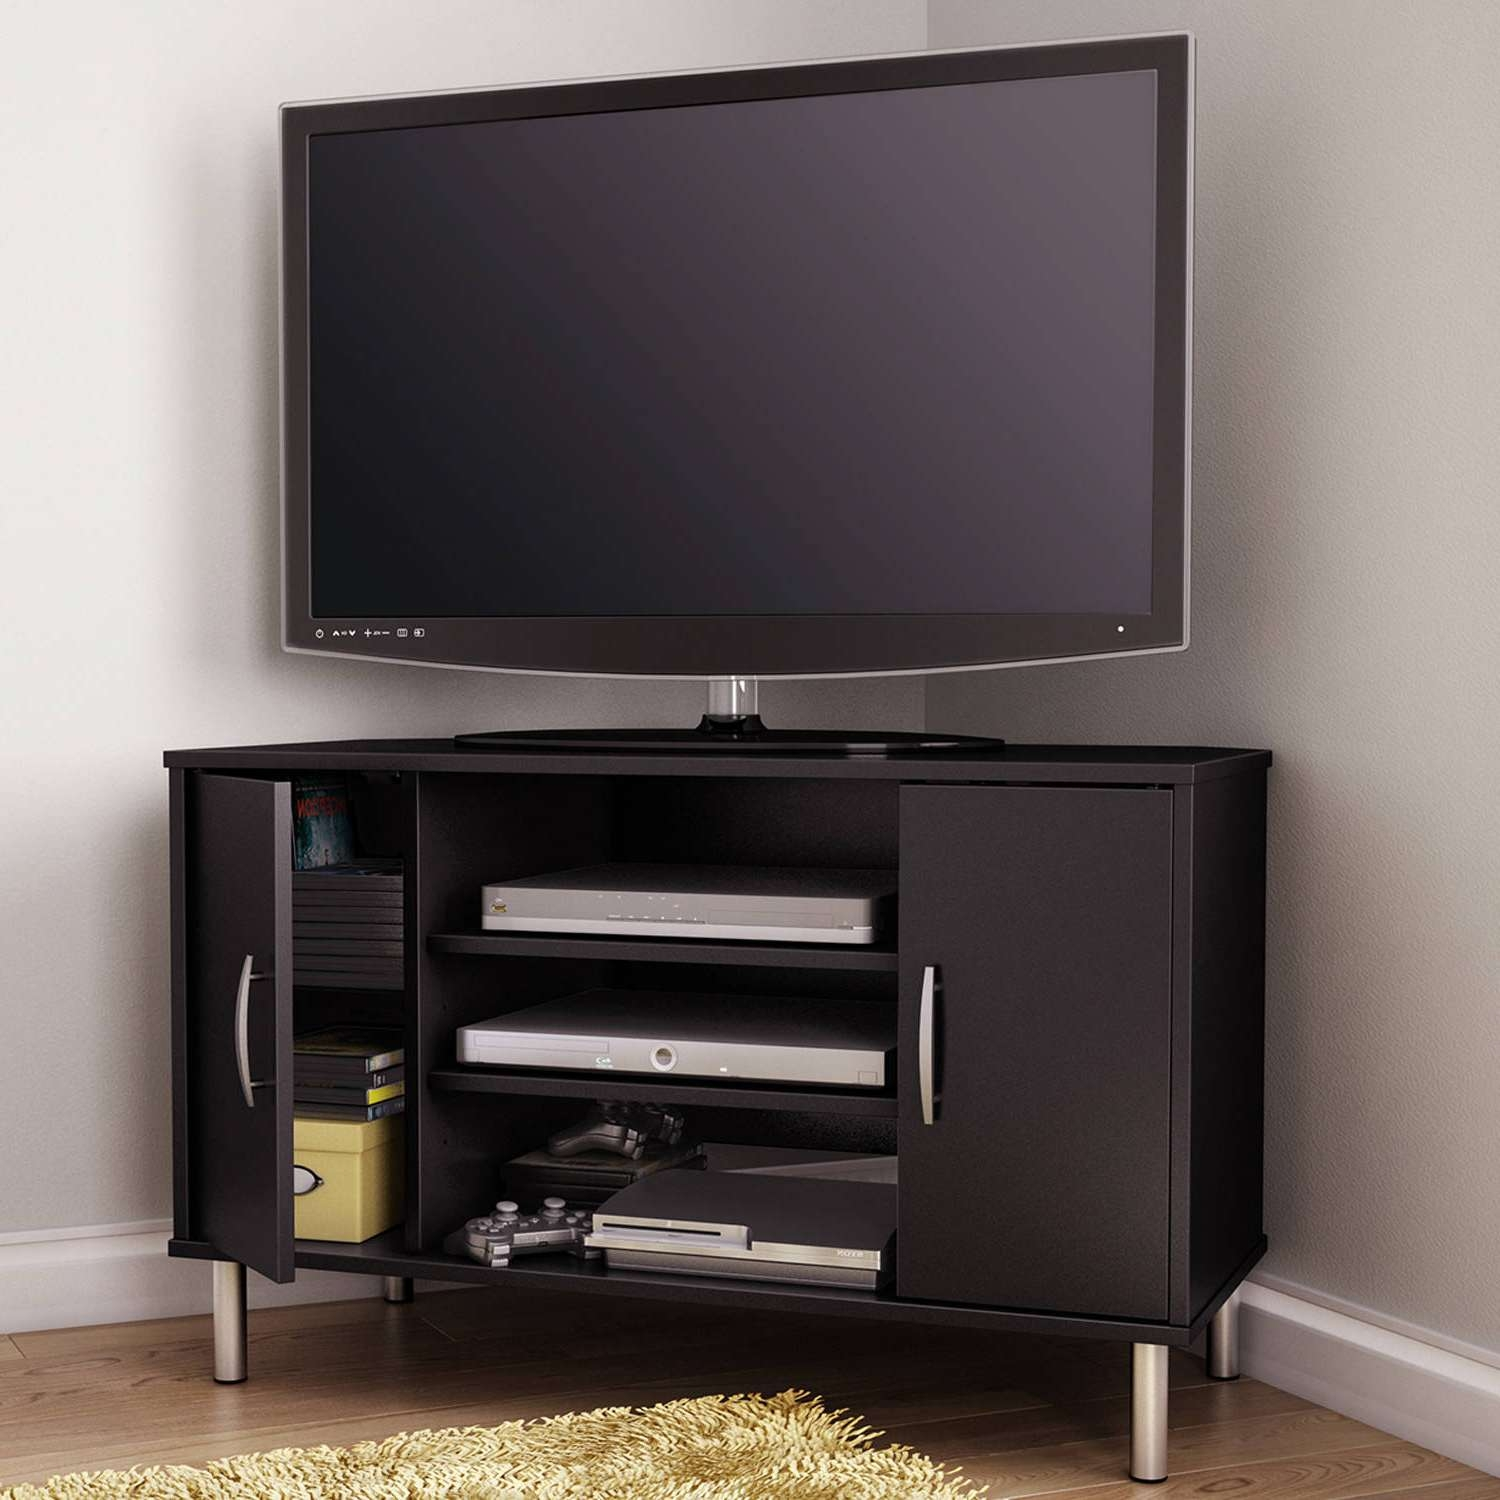 Storage Cabinets Ideas : Corner Tv Cabinet Cream Choosing The Intended For Cream Corner Tv Stands (View 6 of 15)